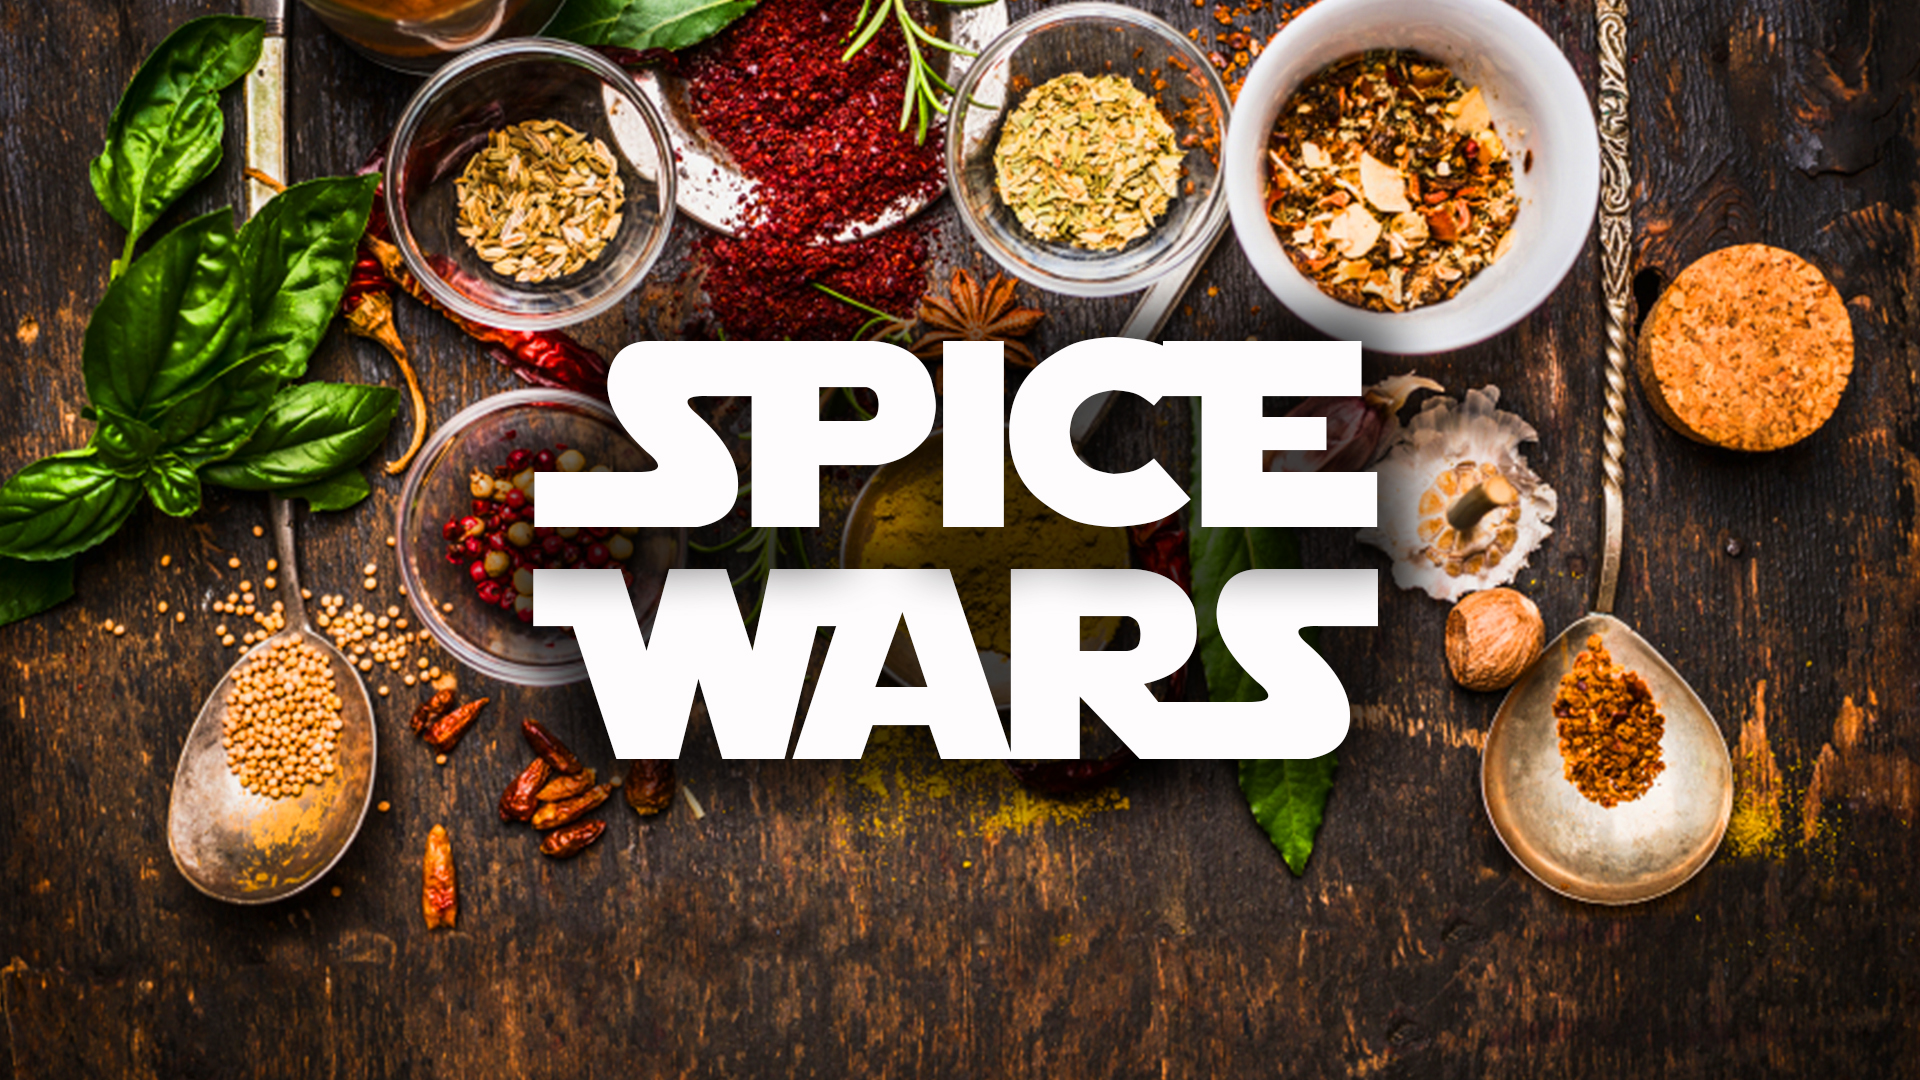 1945 Spice Wars Indonesian Food Challenge will witness some of Australia's most passionate food bloggers face off with best chefs in one of the most exciting culinary event yet! The event also features food competitions where visitors can challenge themselves in eating the spiciest and largest quantity of food ever and win the title of the 1945 Spice War Champion.